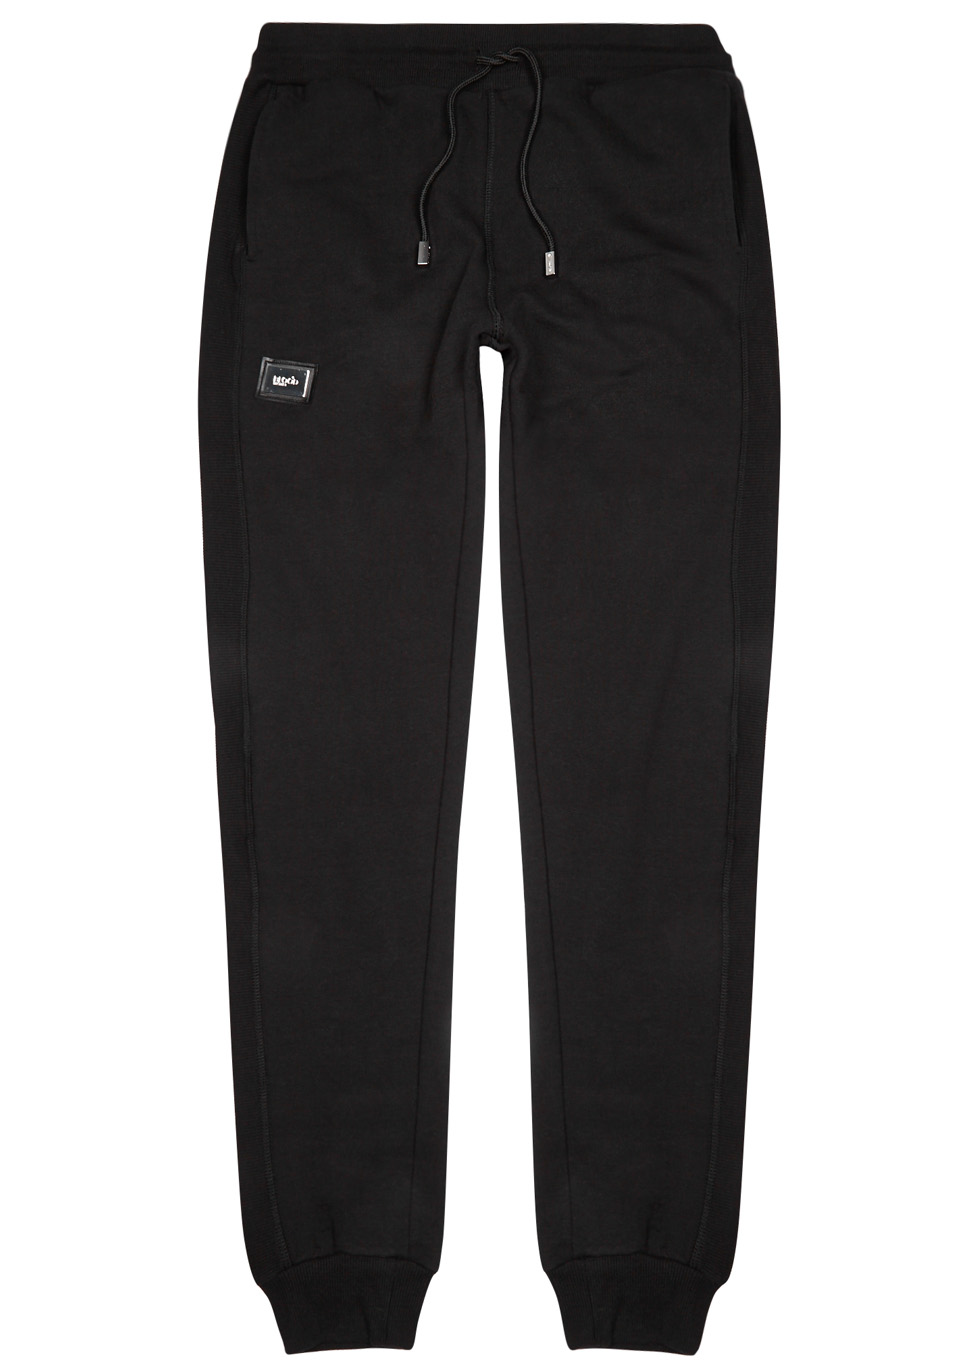 BLOOD BROTHER FORM COTTON BLEND JOGGING TROUSERS